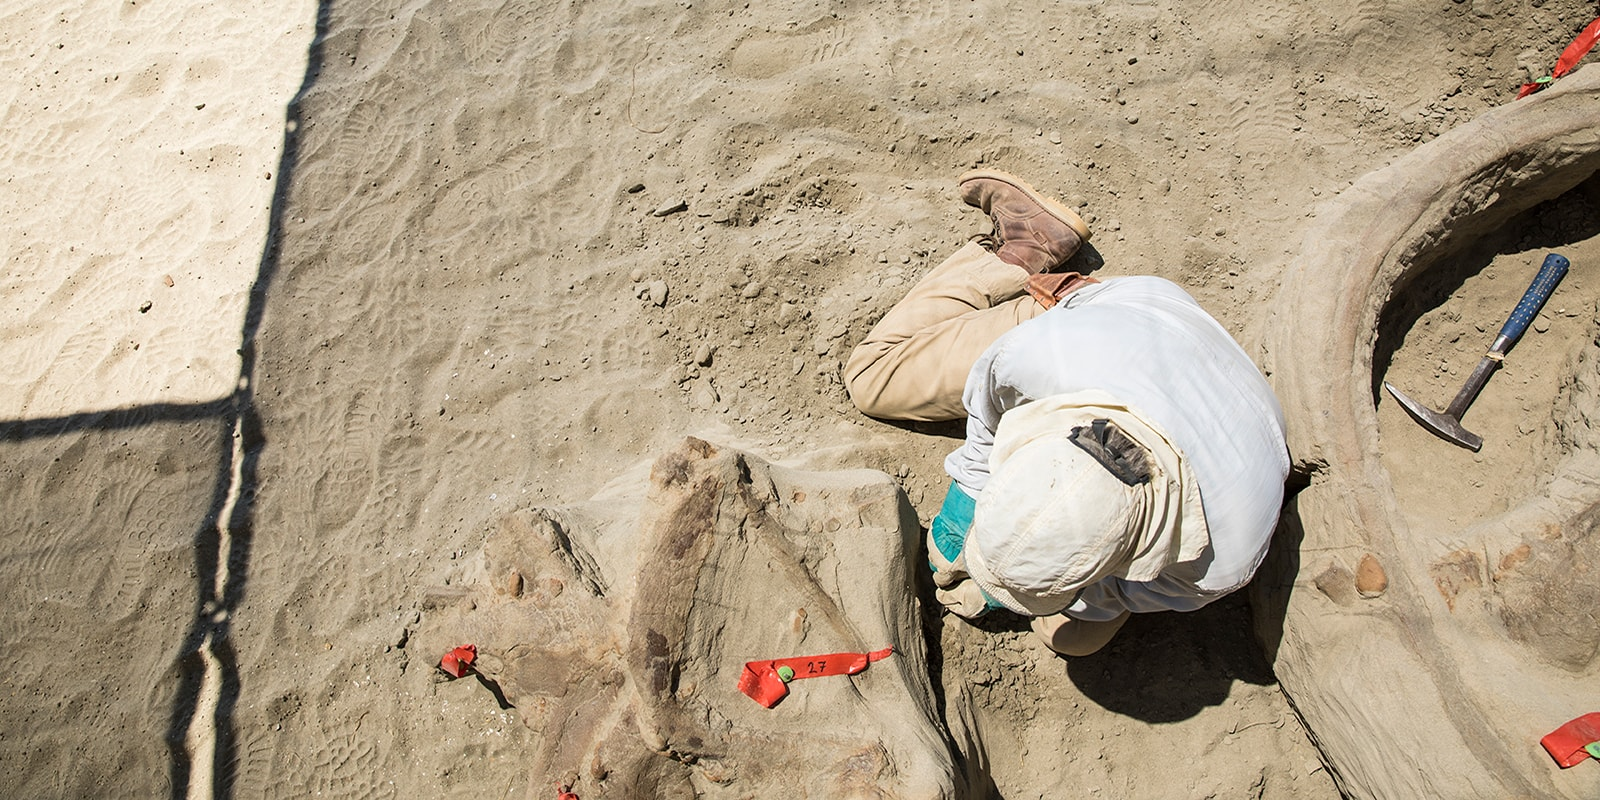 A man wearing a white head covering to protect from the sun digging surrounded by t. rex bones